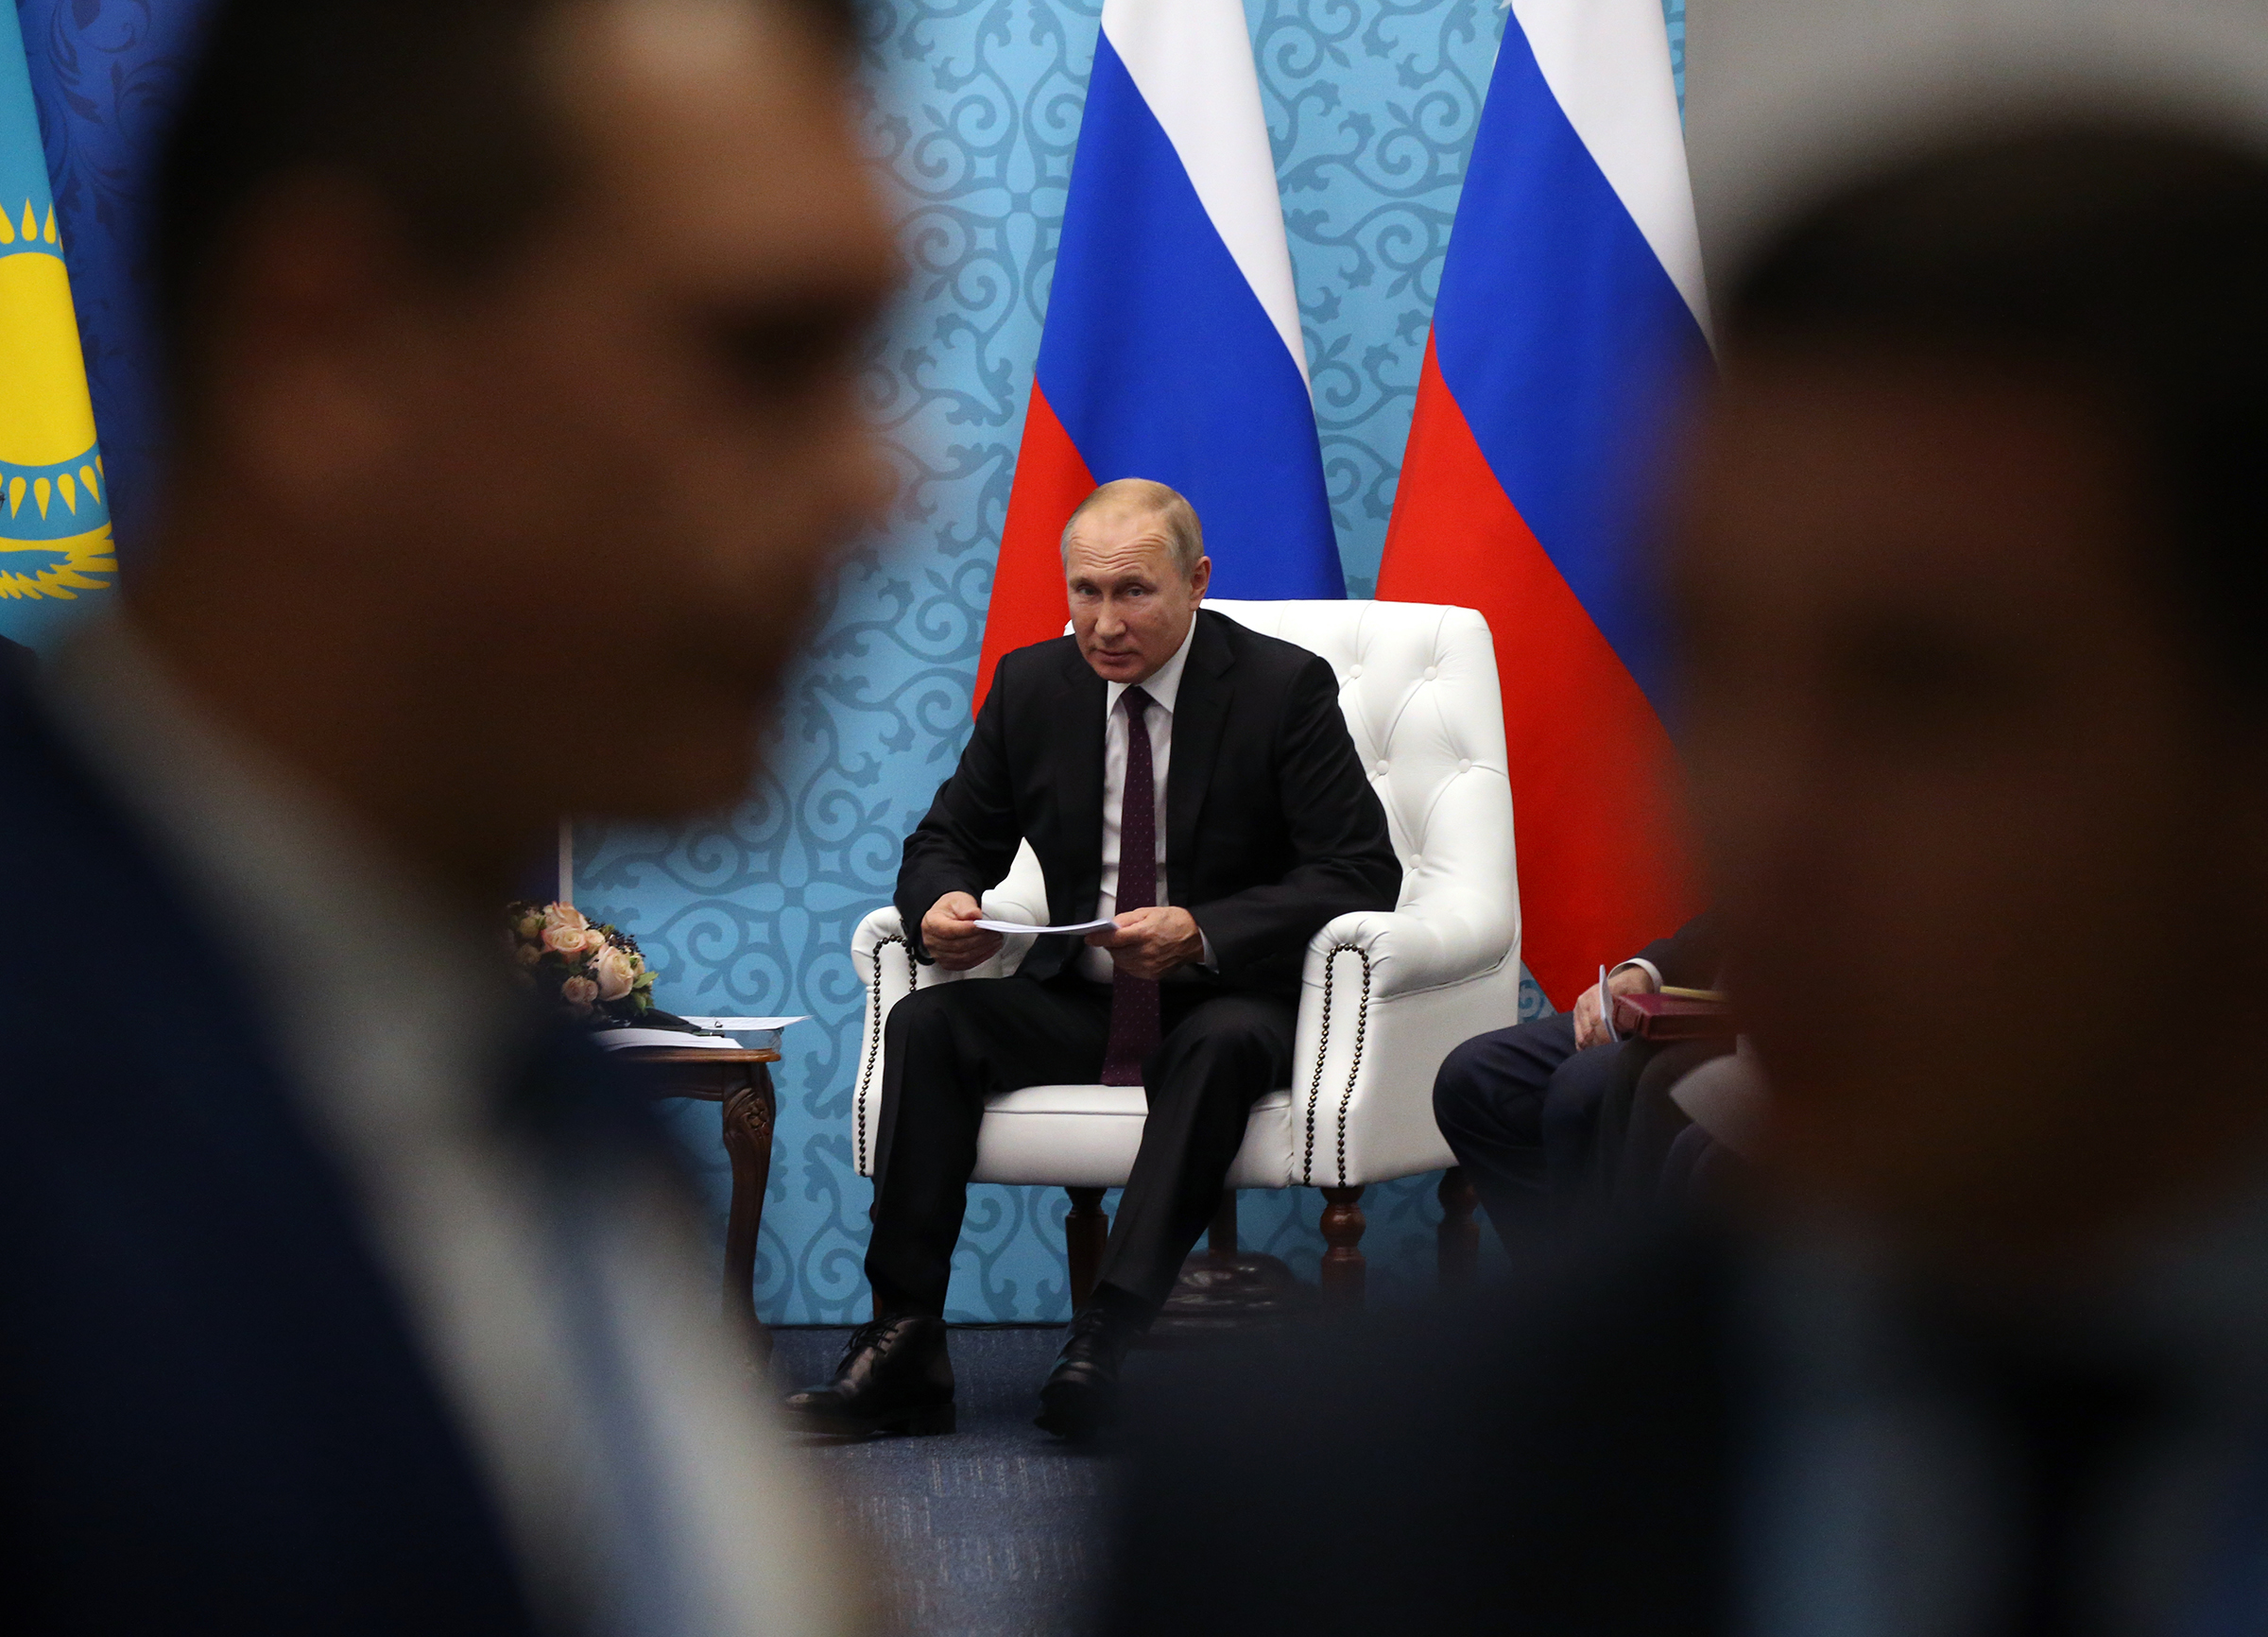 Russian President Vladimir Putin attends a bilaterlal meeting at the Russian-Kazakh Regional Forum on in Omsk, Russia on Nov. 7, 2019.